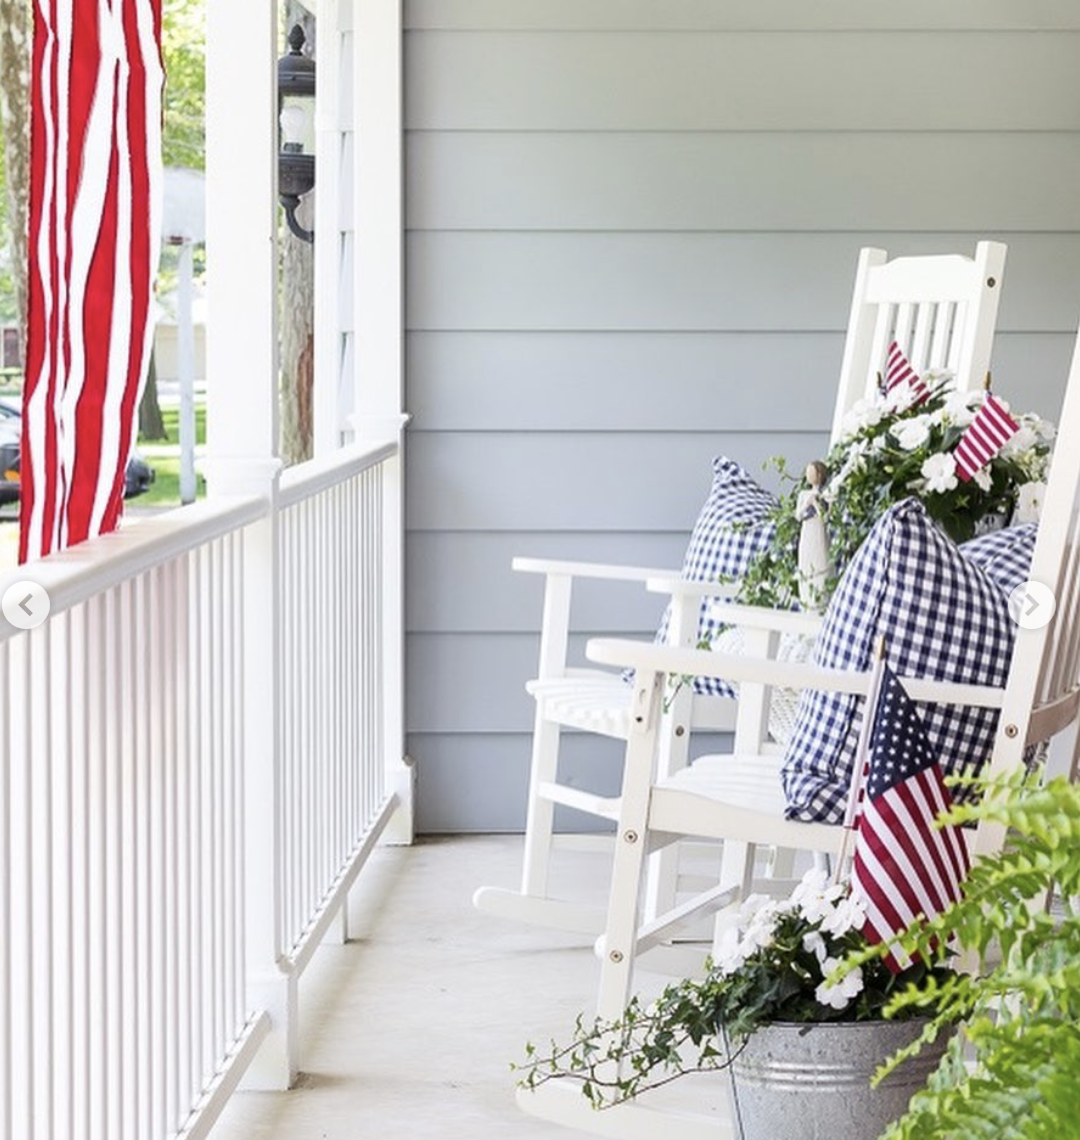 Perfect Porches for the Fourth